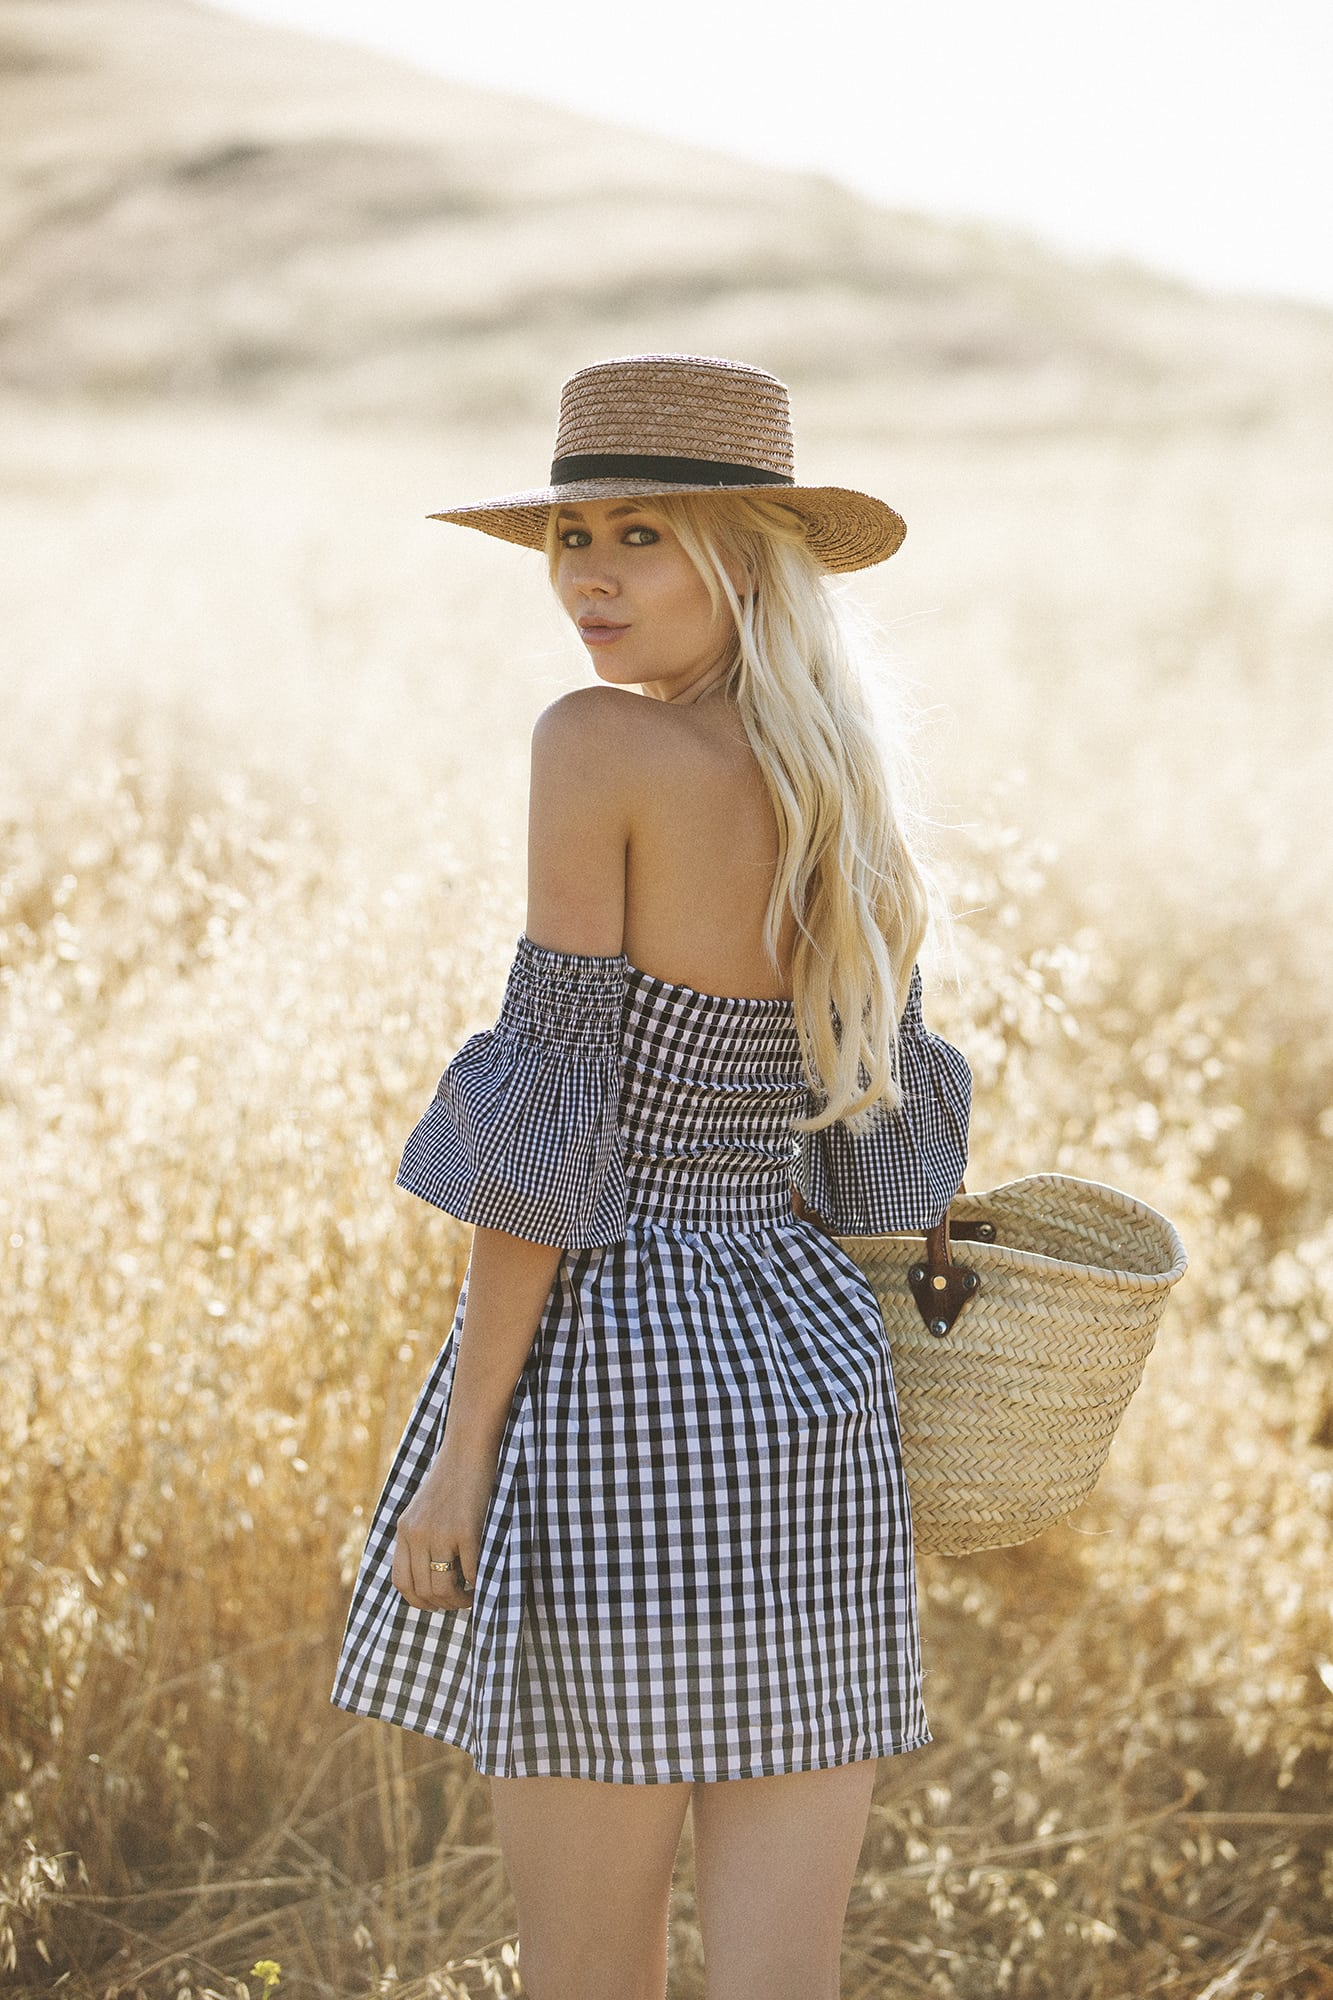 Sarah Loven in The Vetiver Collection - Ready Gypset Go